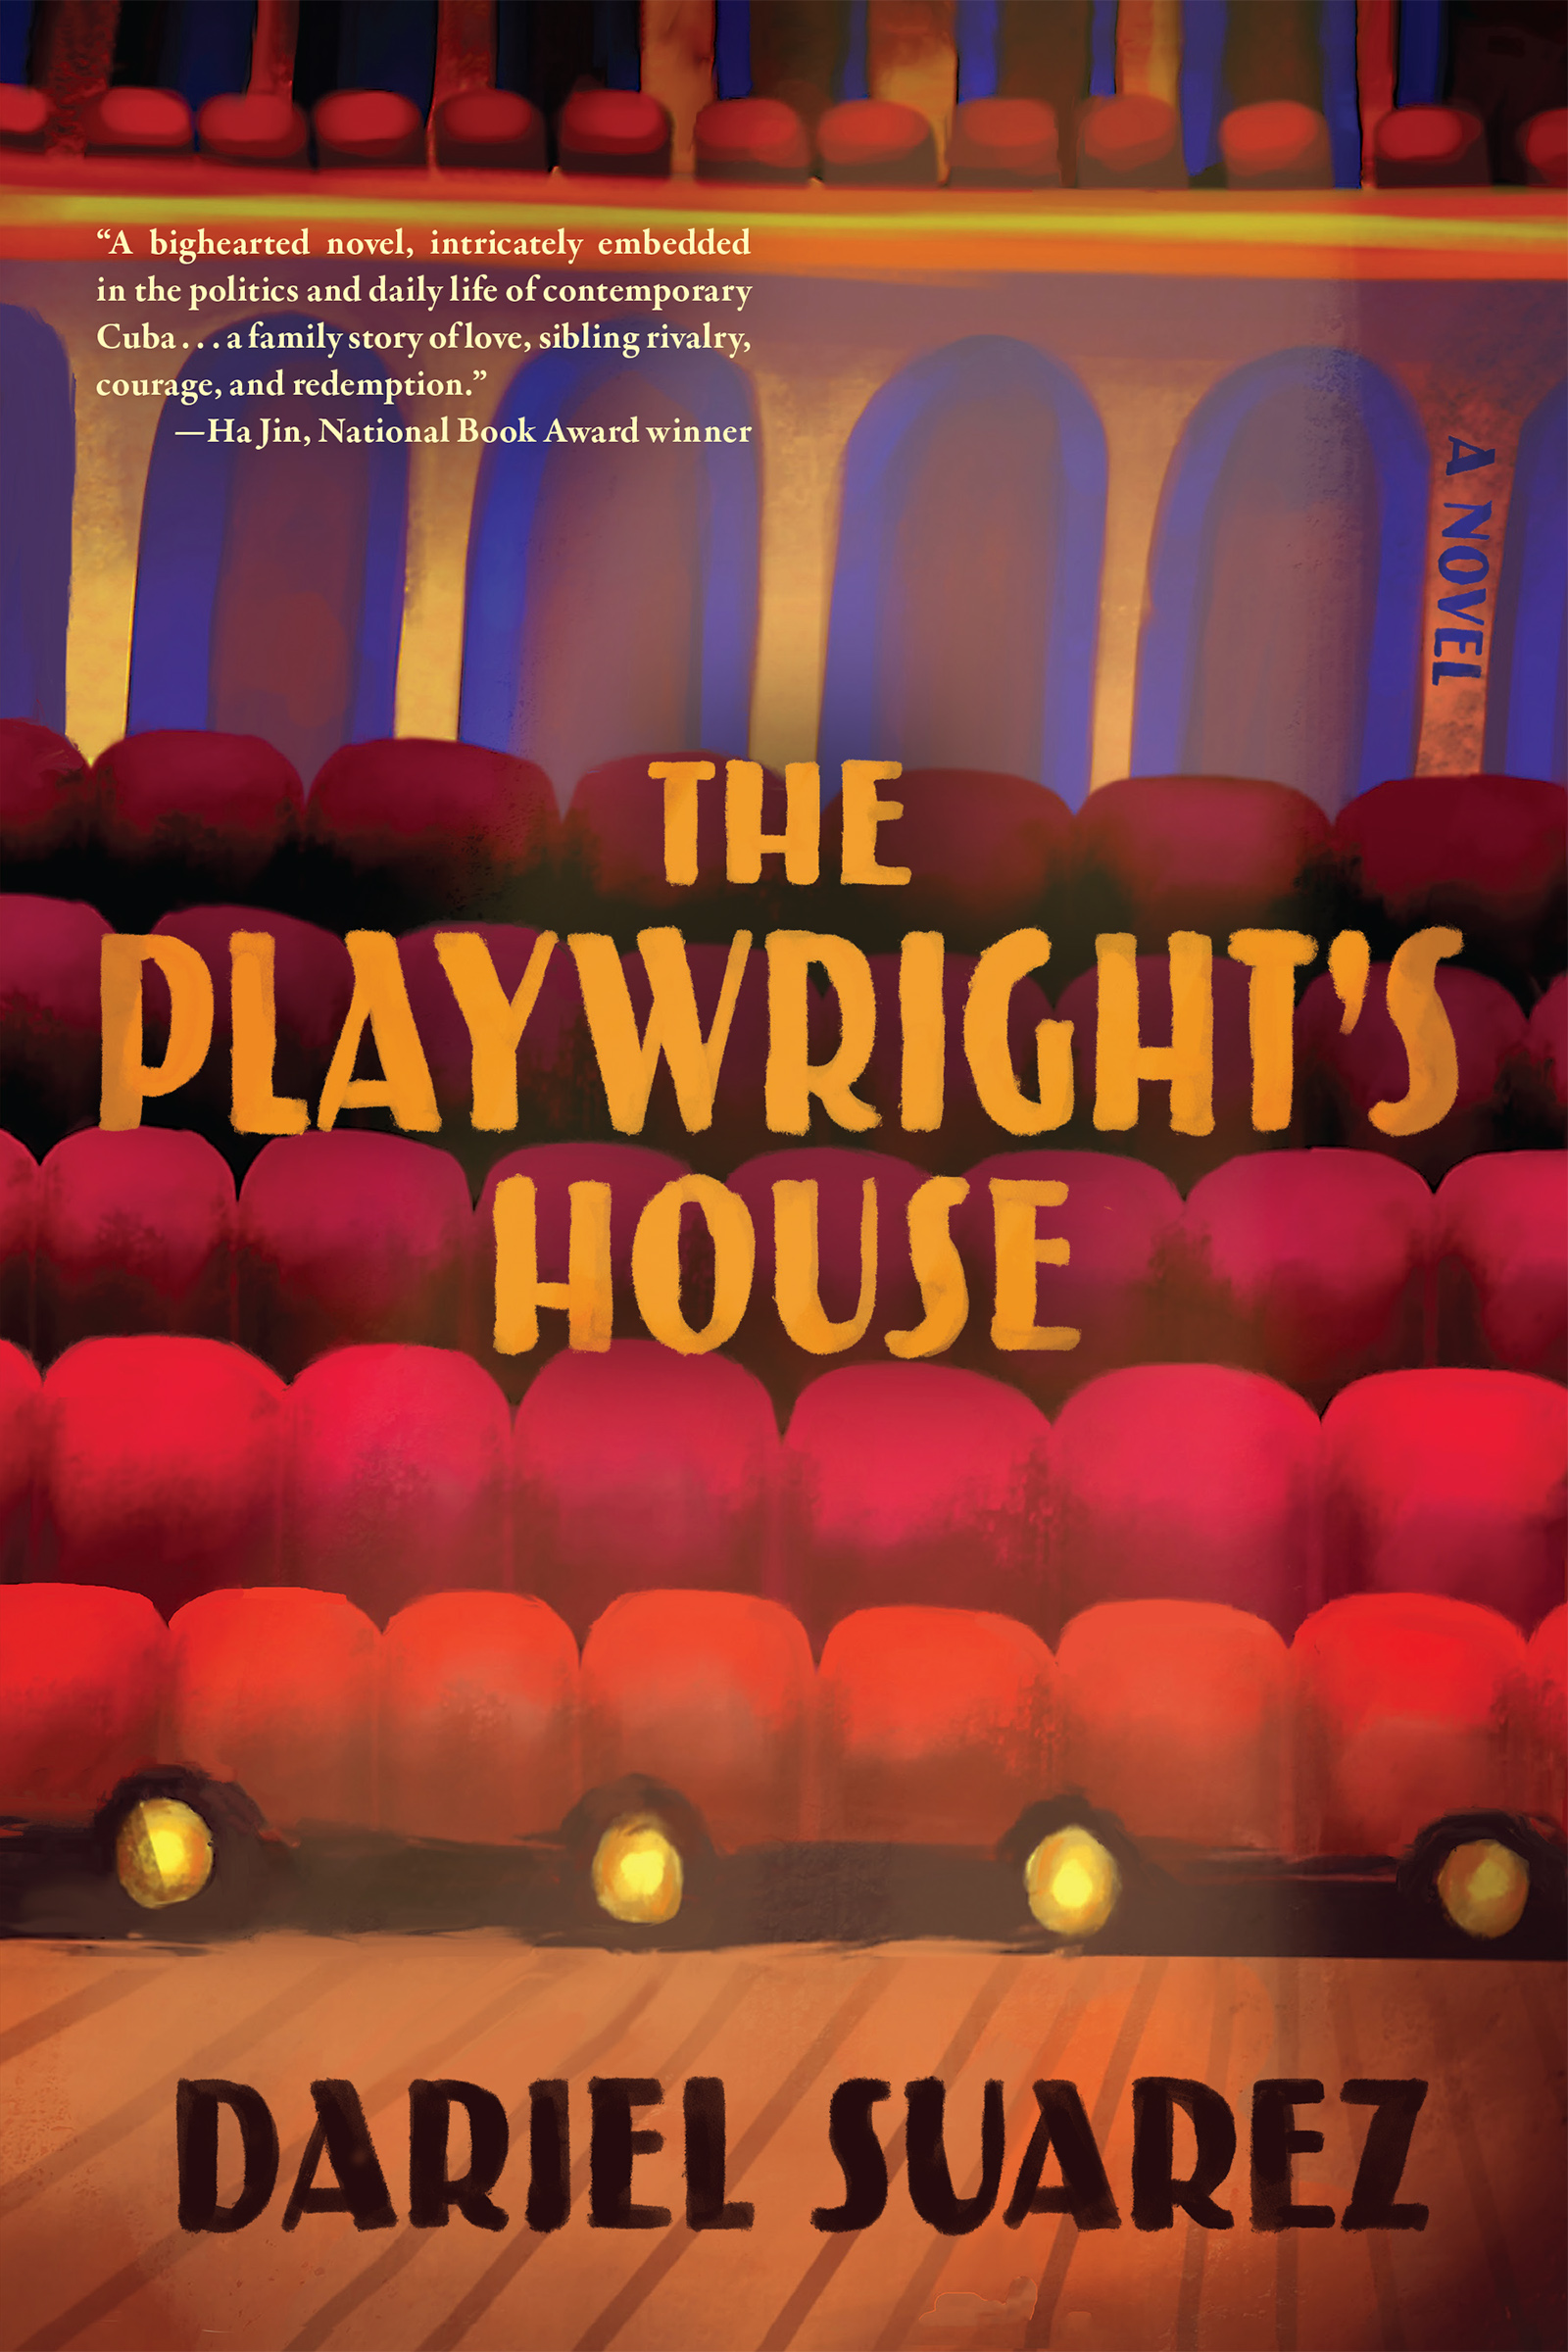 A painting of a theater stage with the lights on and the crowd seats empty with yellow text in the center that reads The Playwrights House a novel by Dariel Suarez.